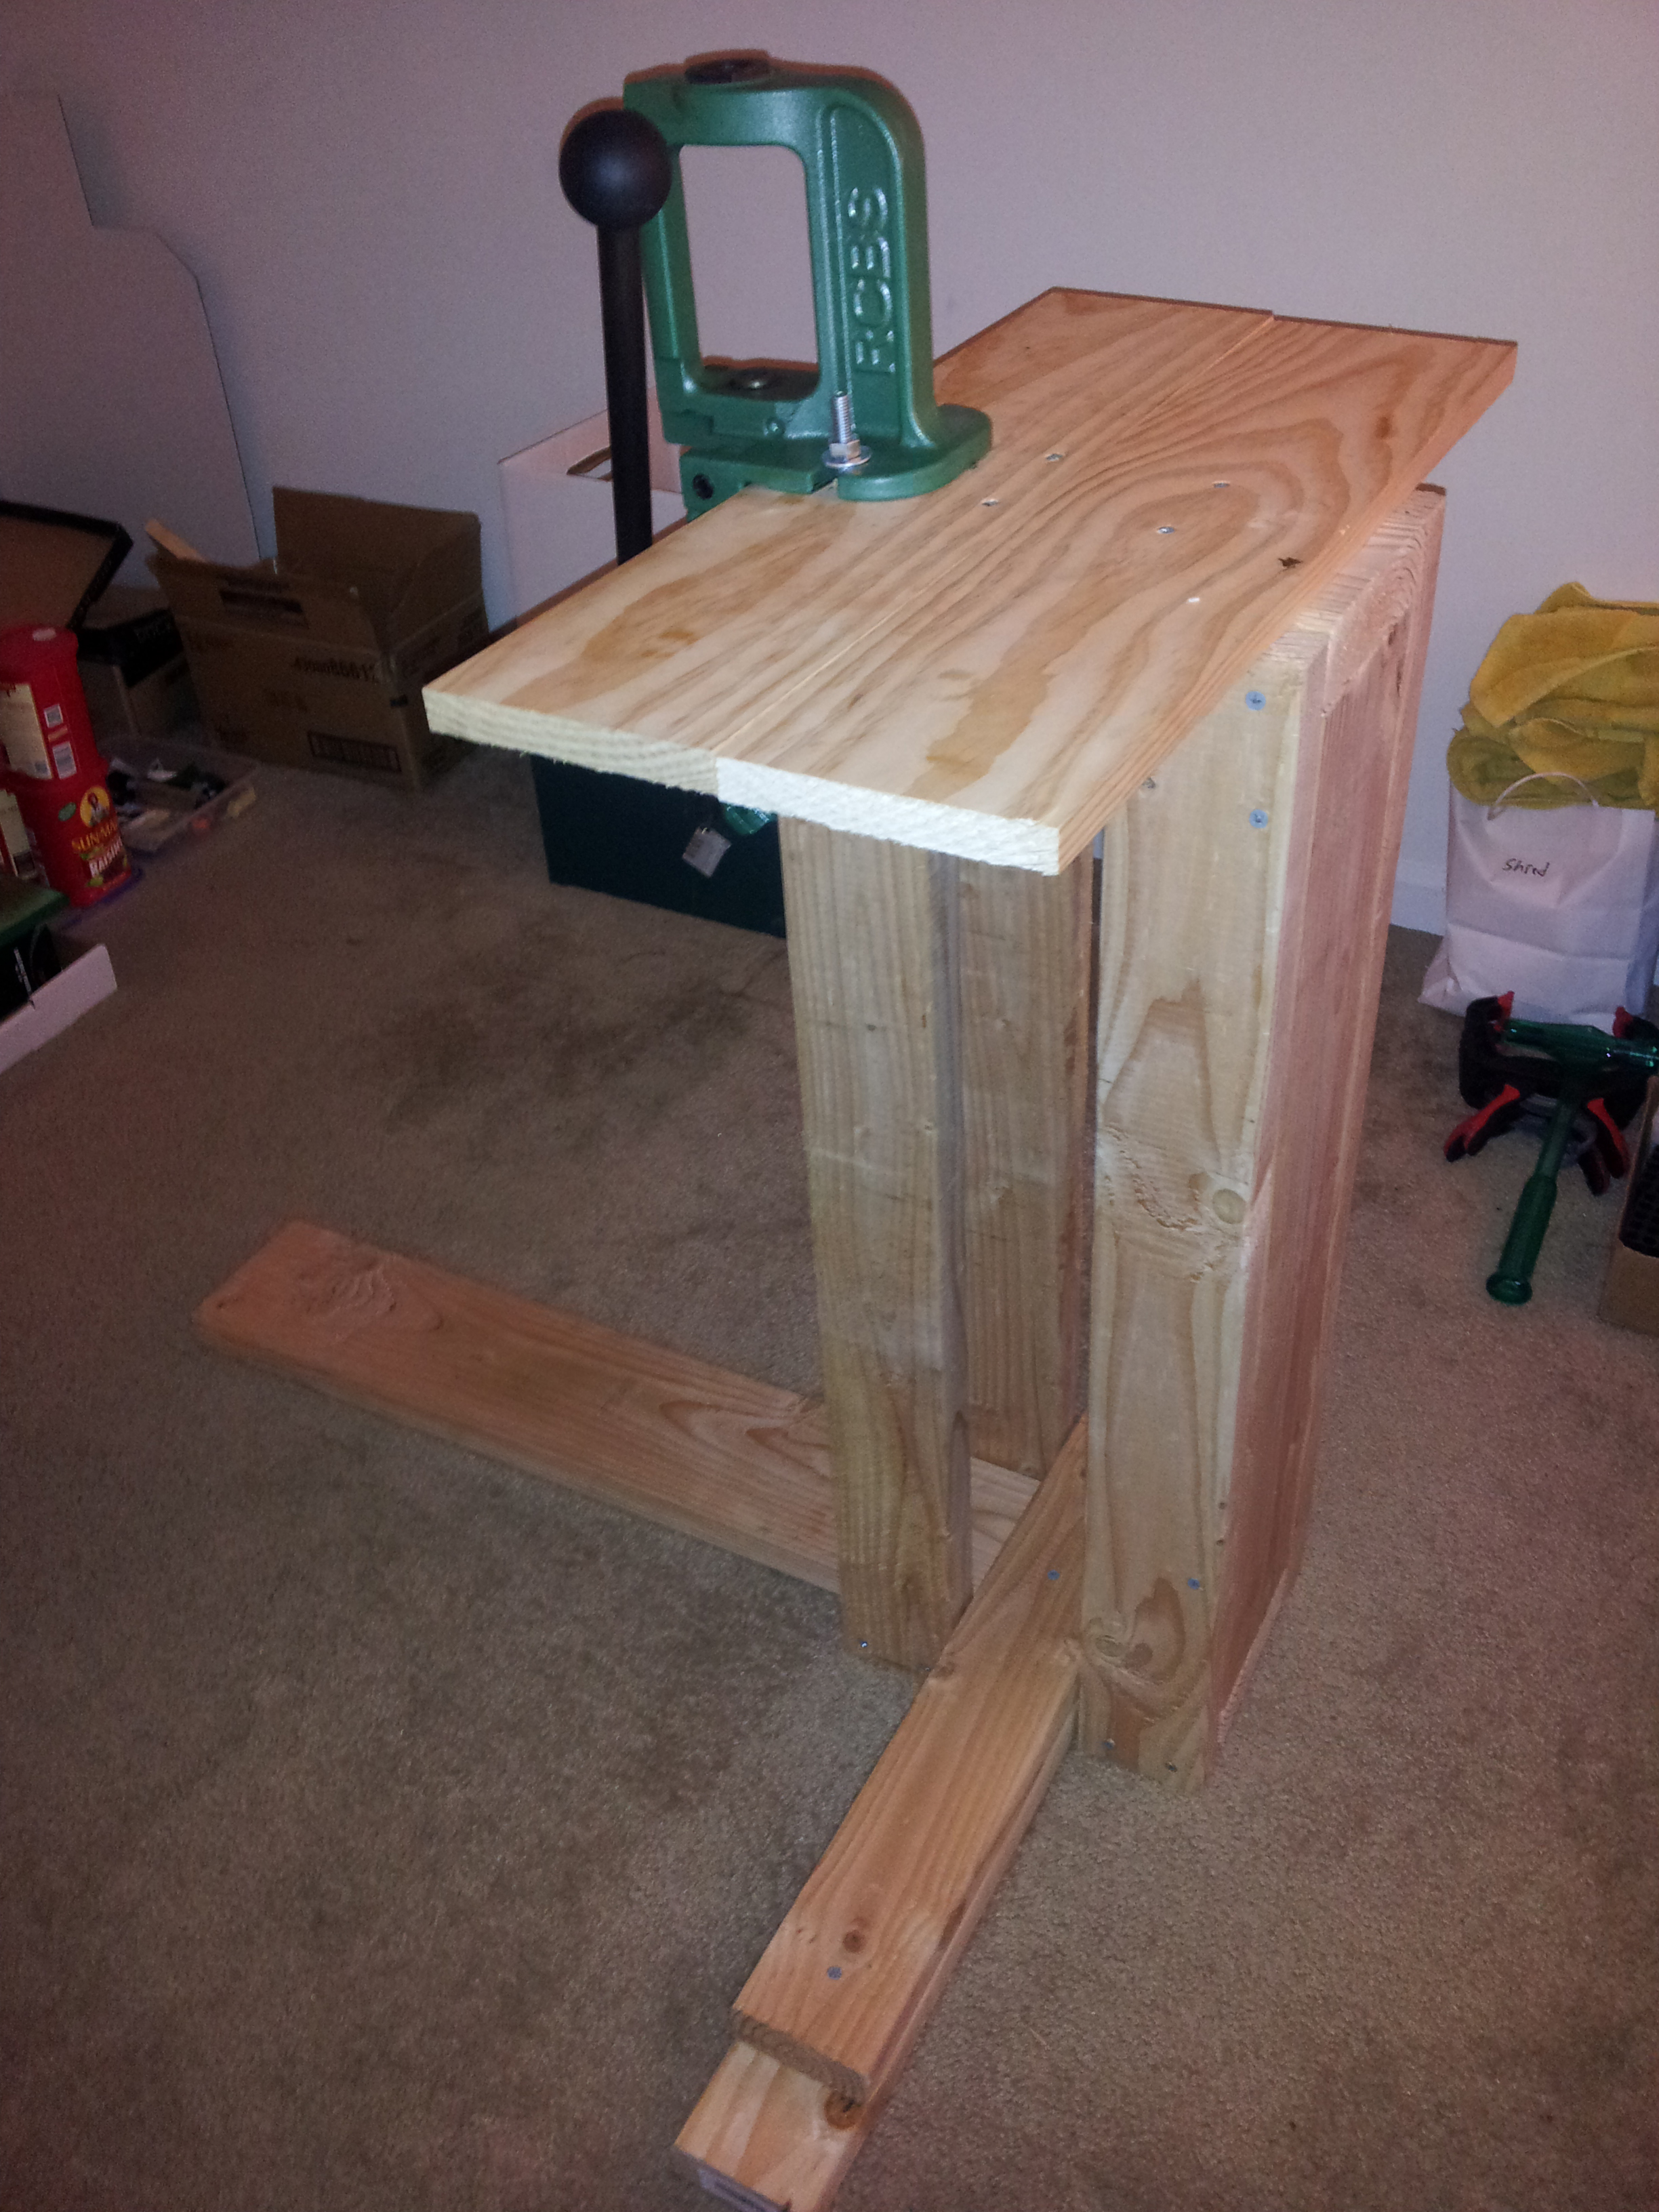 Building A Reloading Bench Questions Page 2 M14 Forum